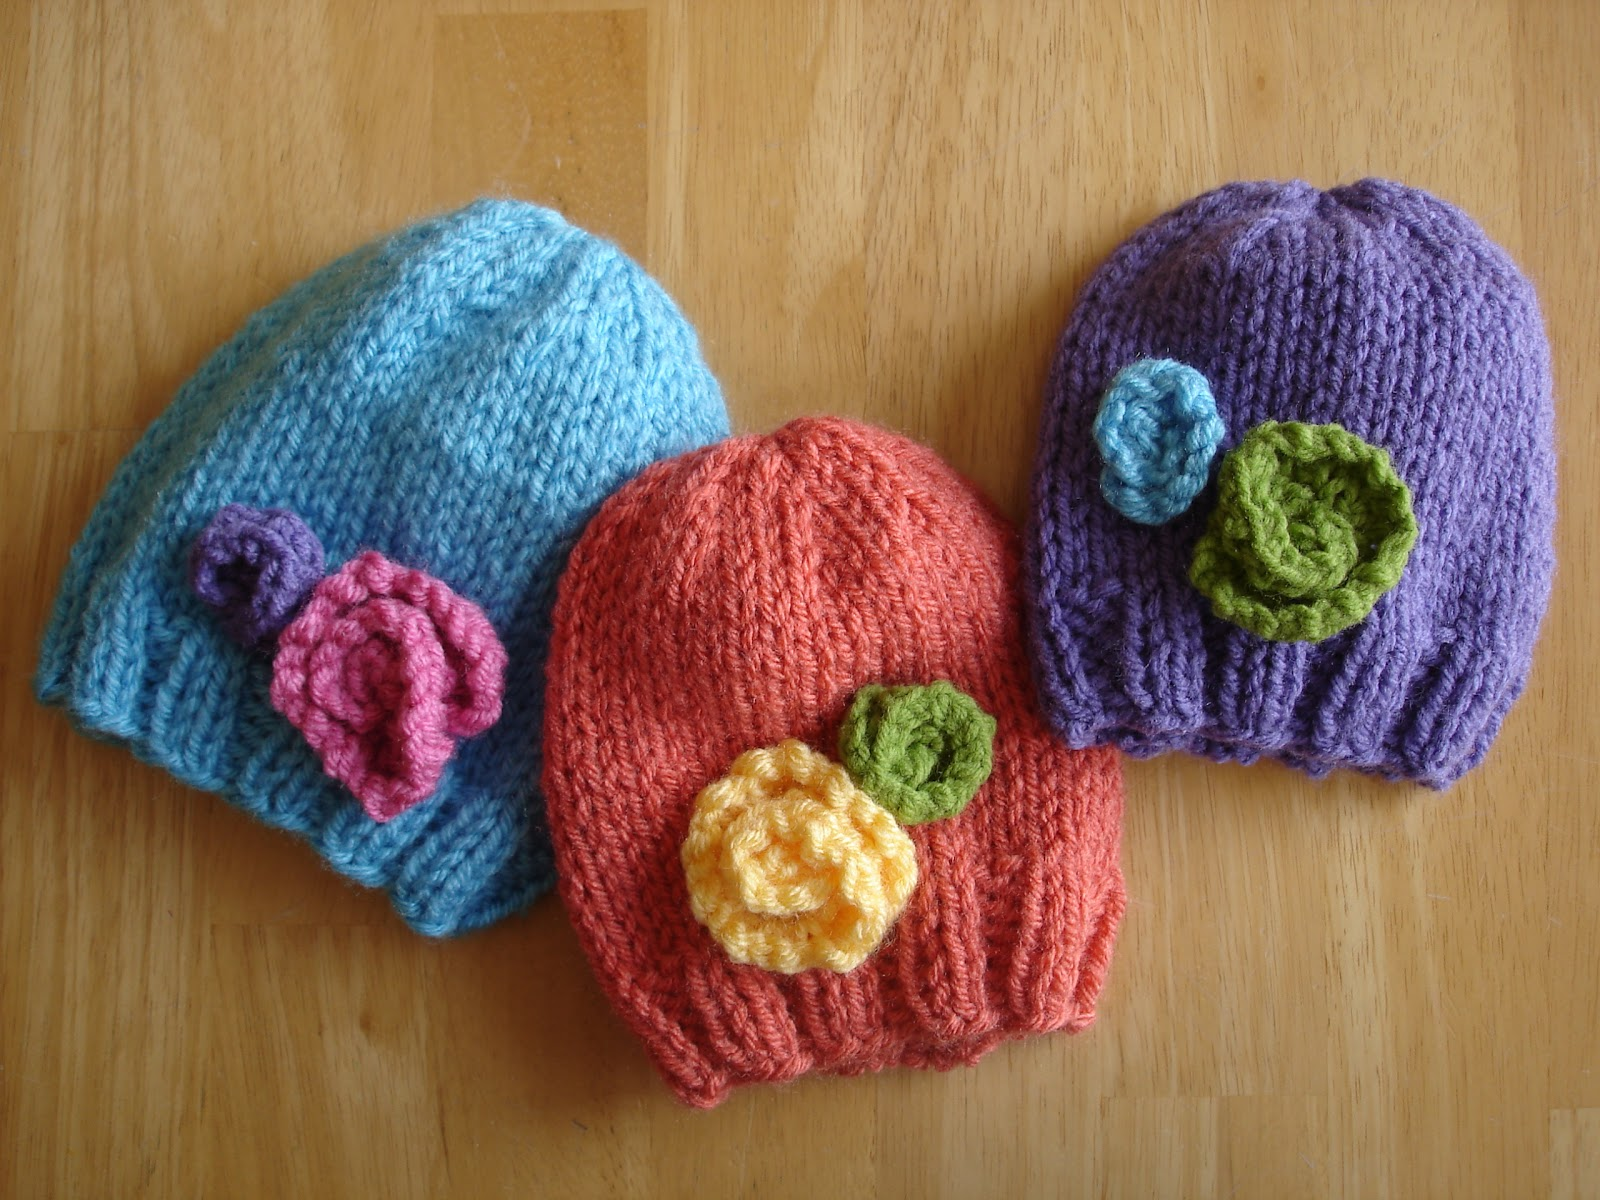 Free Knitting Pattern Baby Flower Hat : Fiber Flux: Free Knitting Pattern! Baby In Bloom Hats